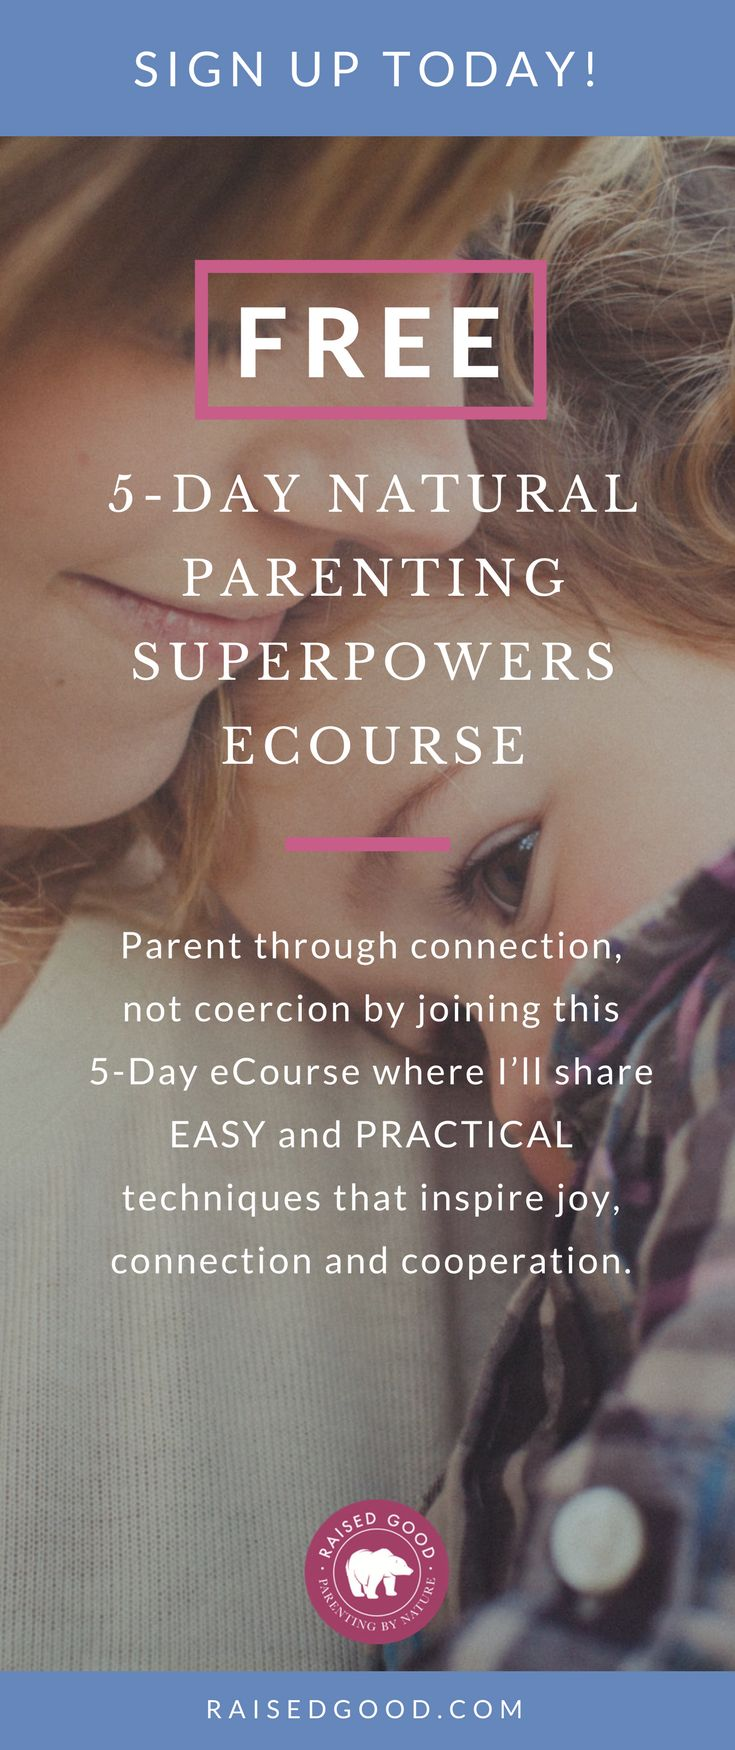 Parent through connection not coercion by joining this 5-Day eCourse where I'll share EASY and PRACTICAL techniques that inspire joy, connection and cooperation.